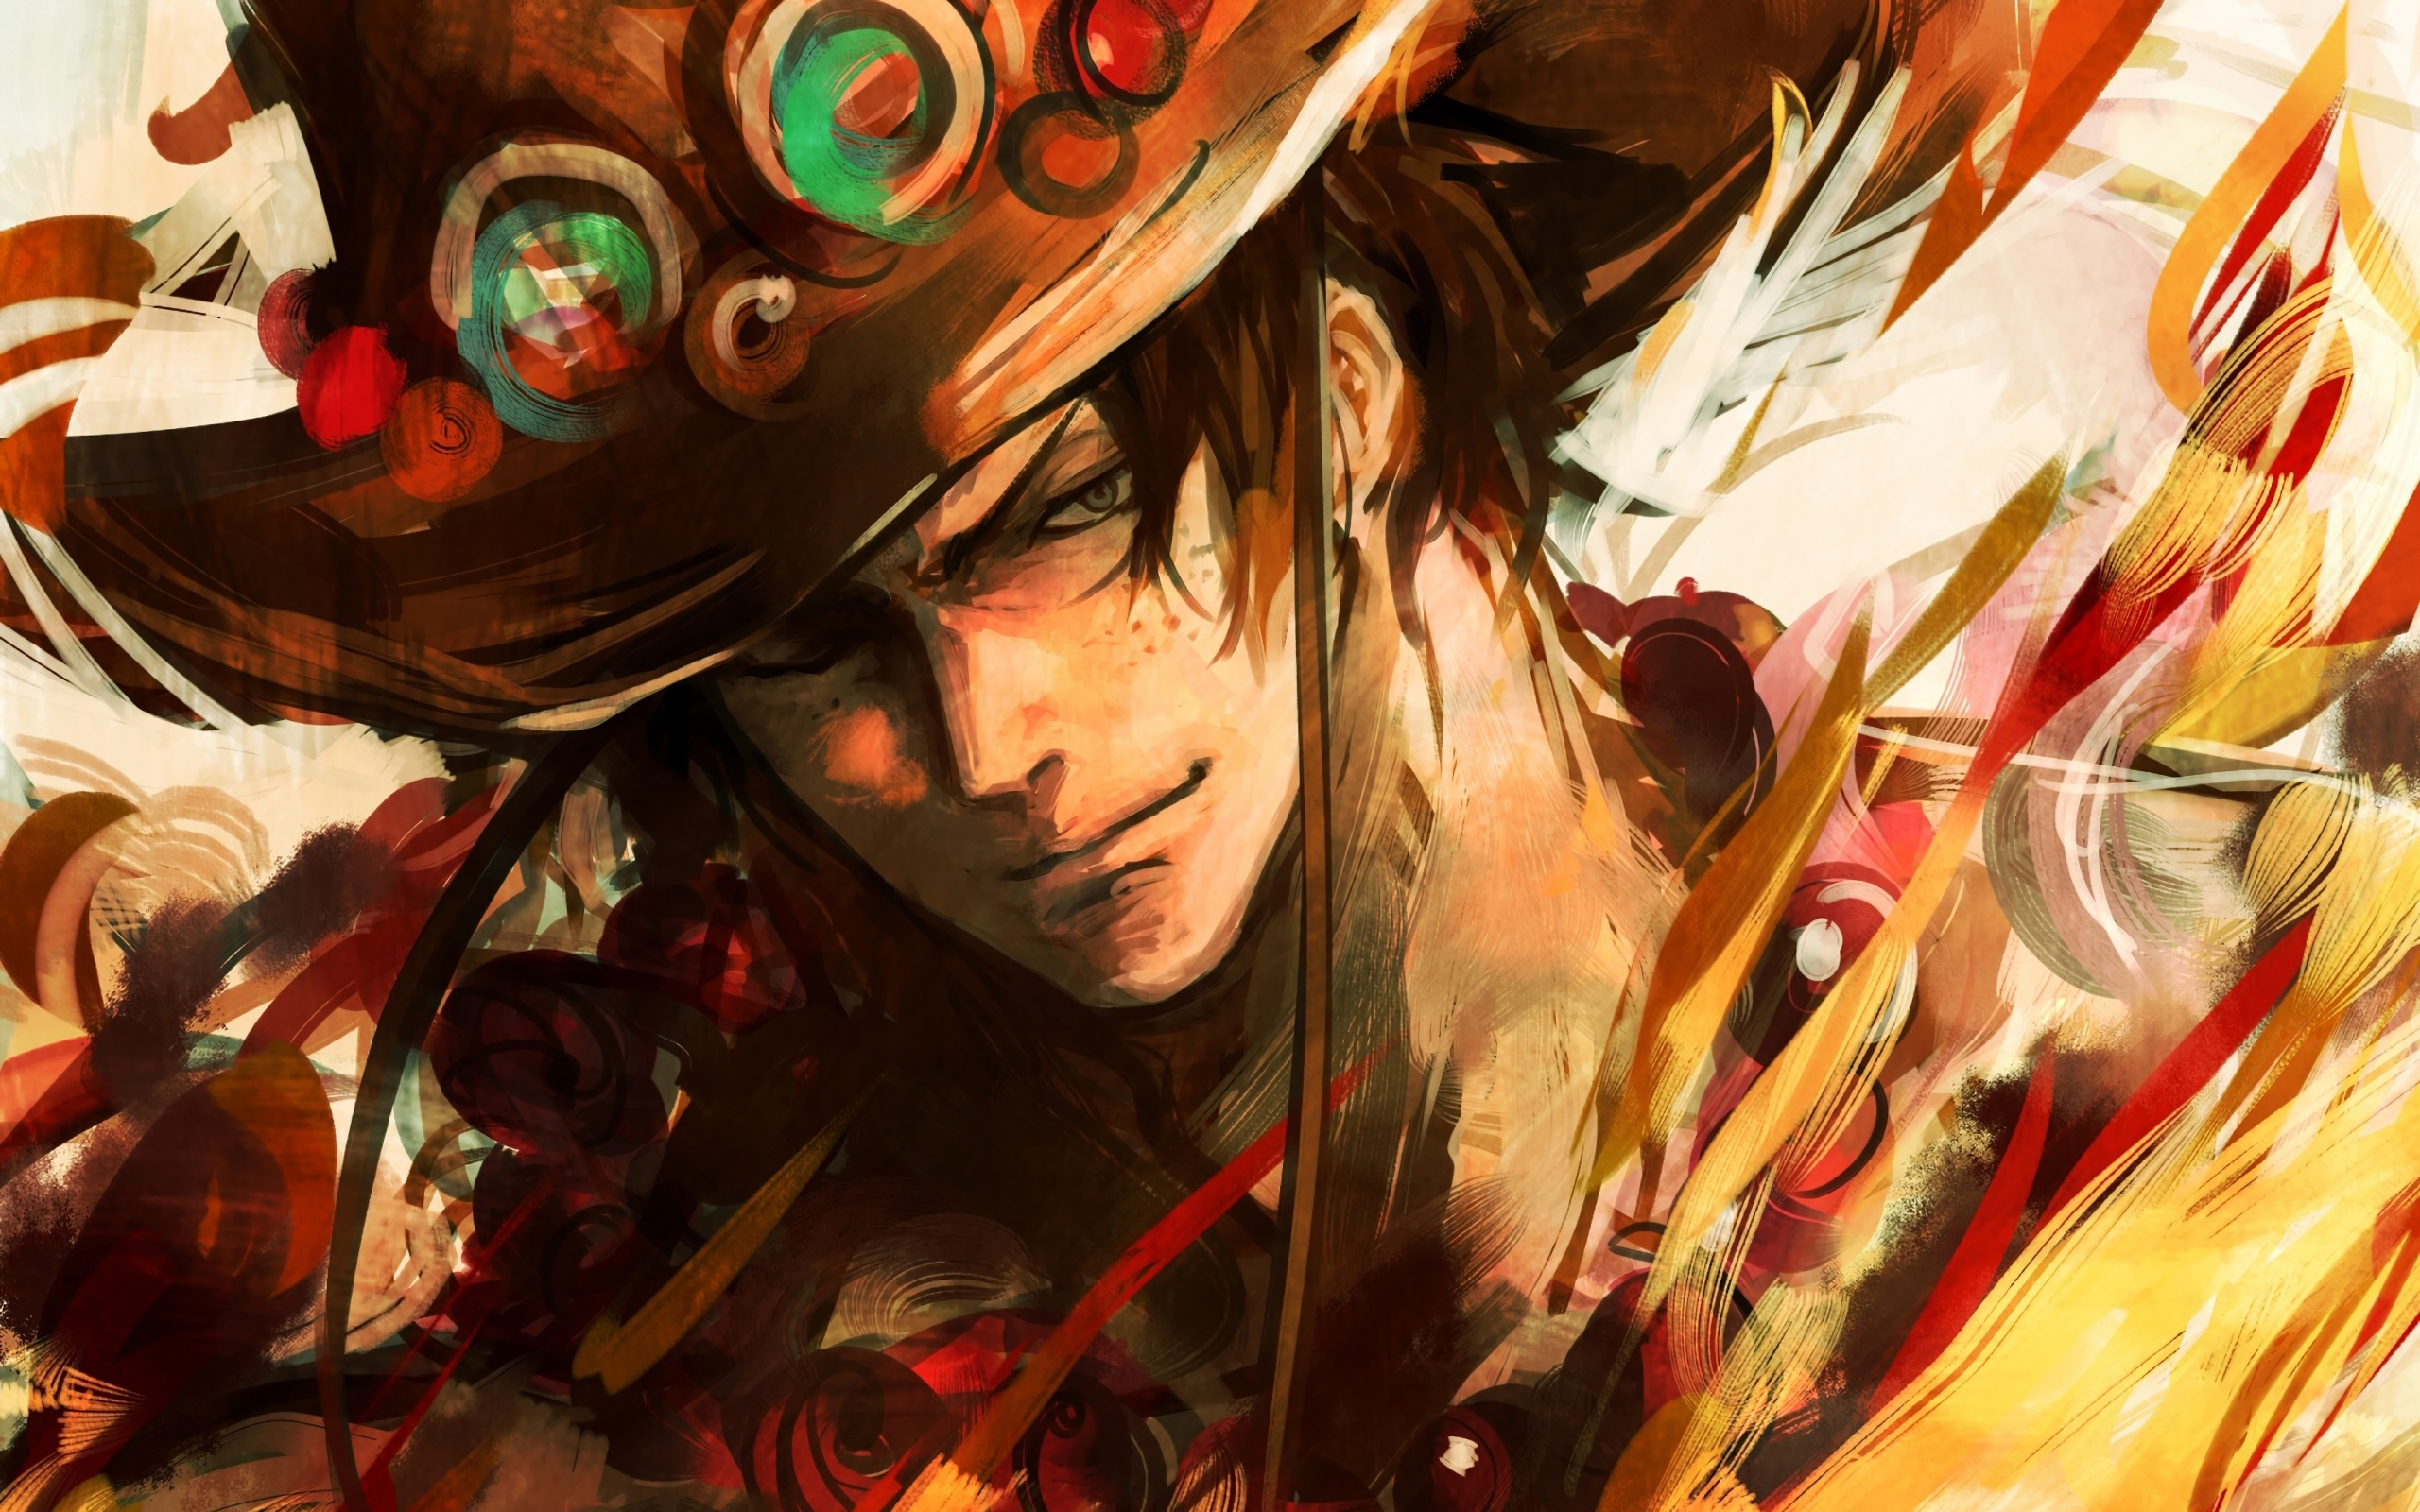 Wallpaper Of Portgas D Ace Anime One Piece Background